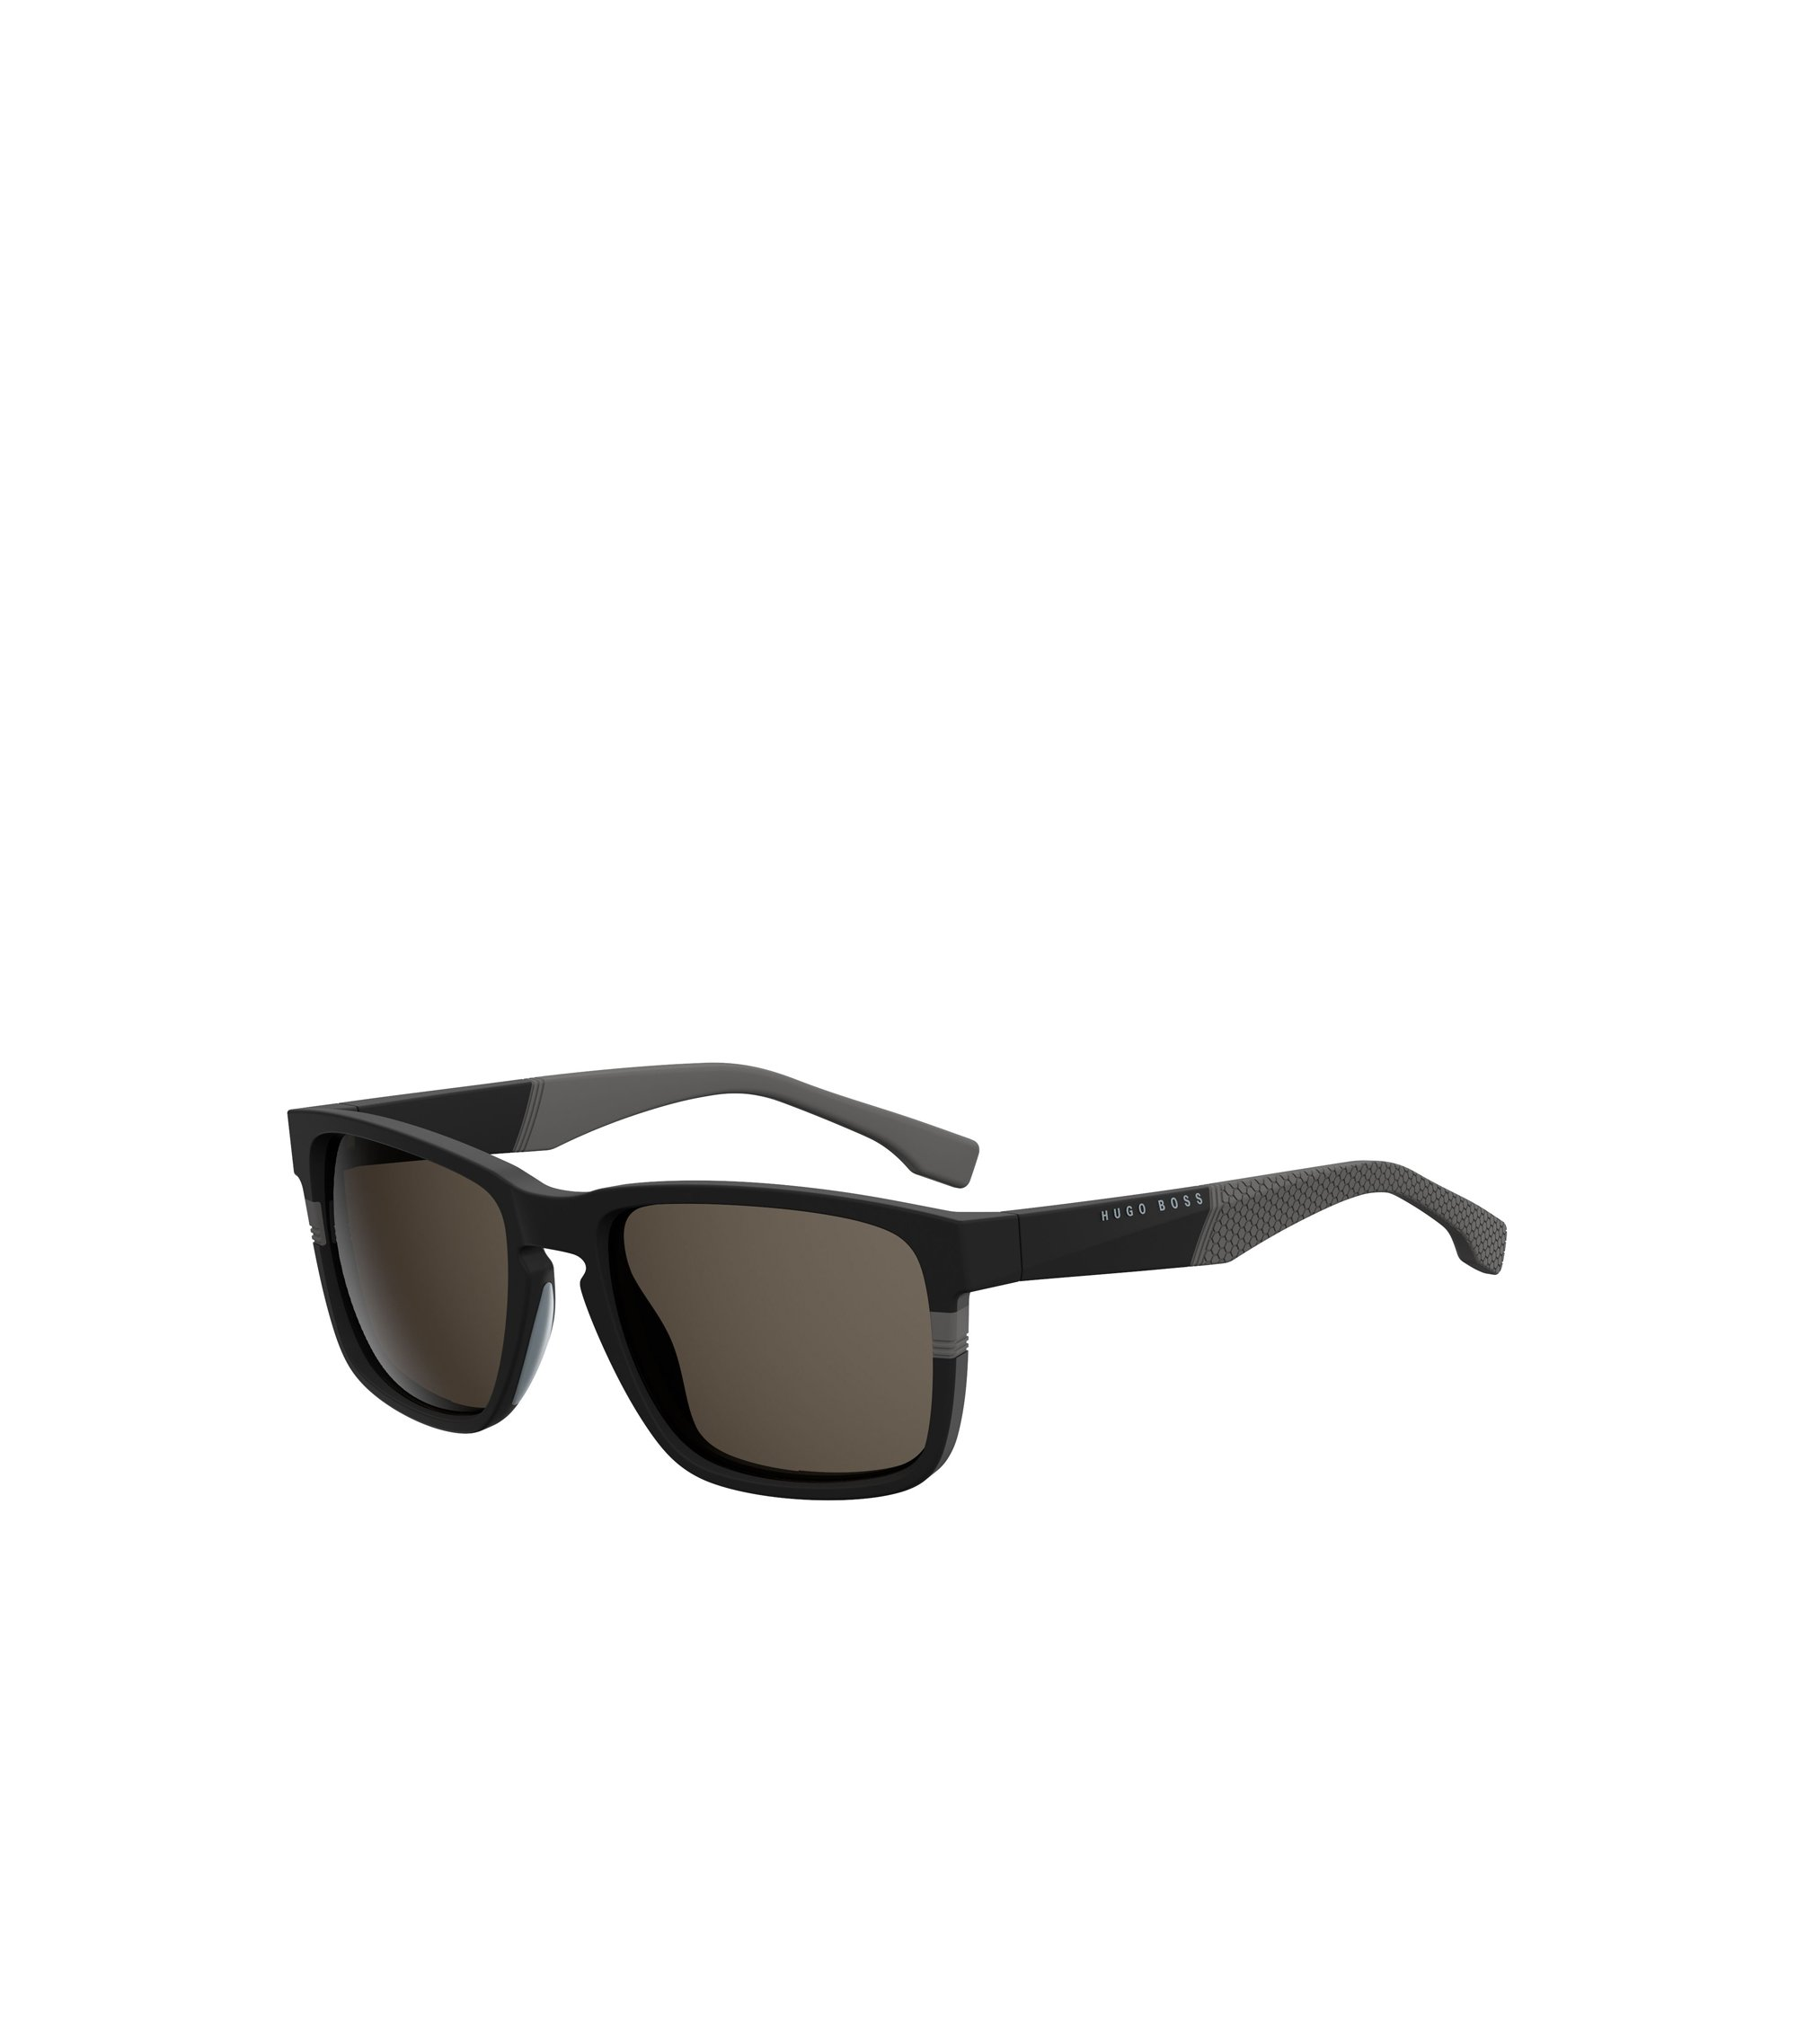 Black Rectangular Acetate Sunglasses | BOSS 0916/S, Assorted-Pre-Pack